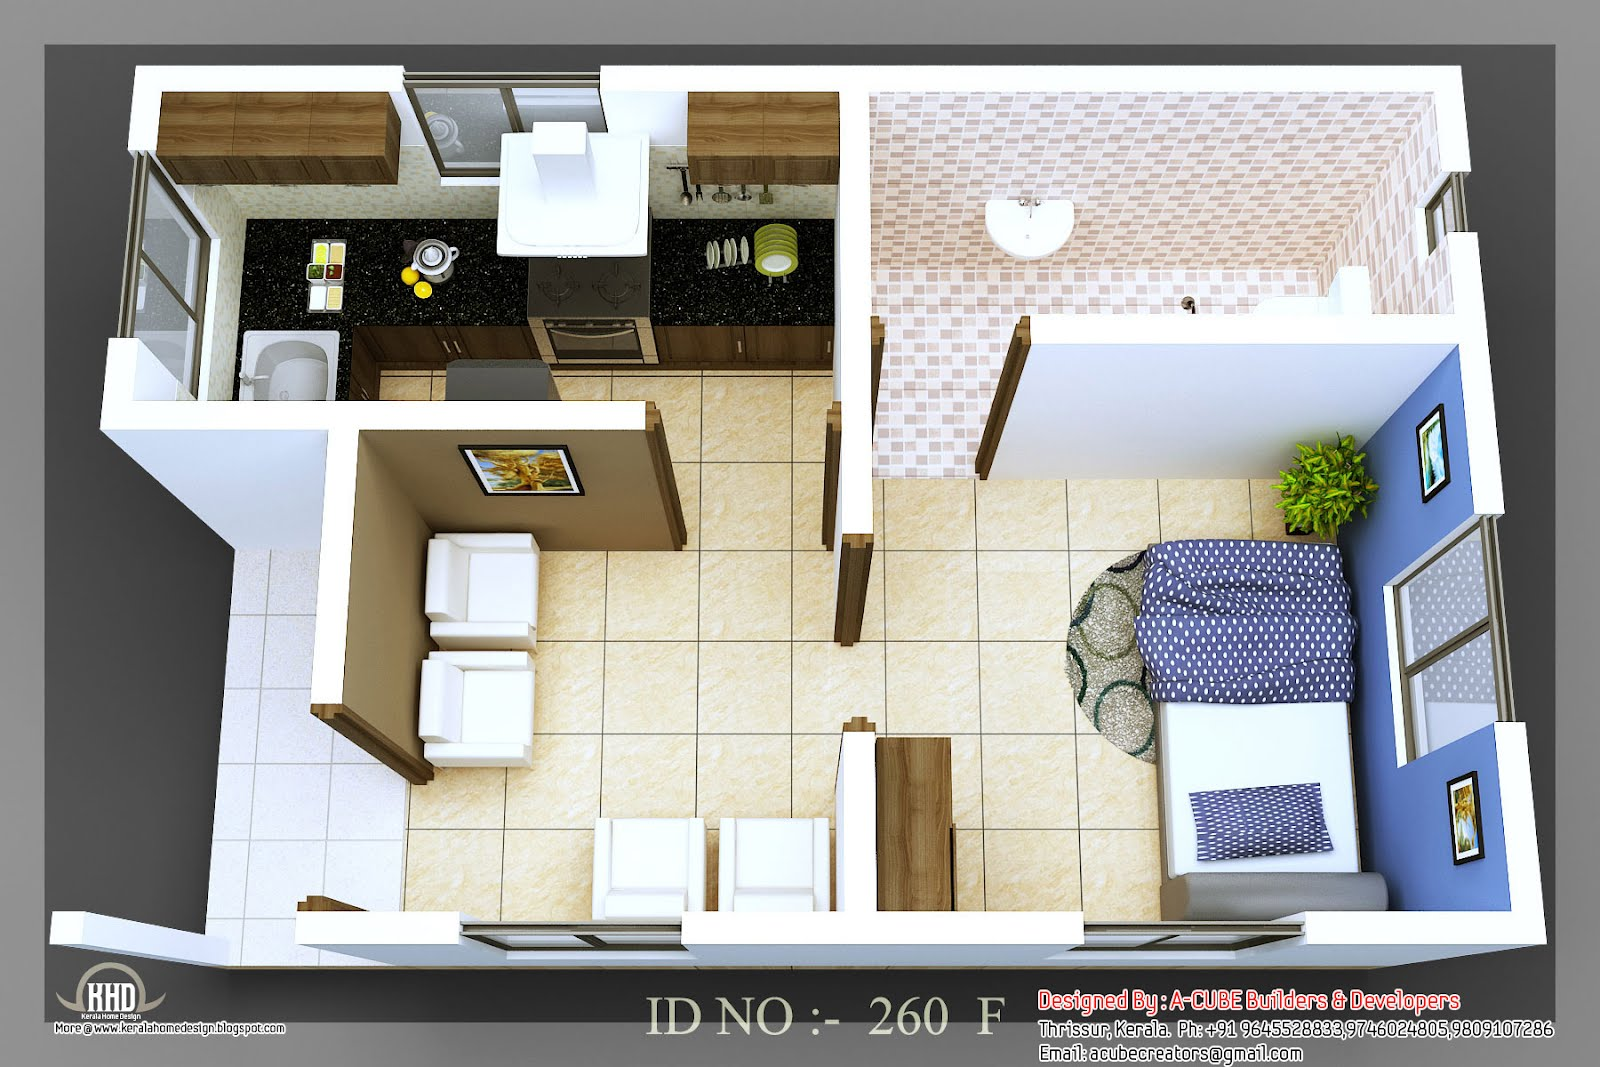 3d isometric views of small house plans home appliance for 3d house design